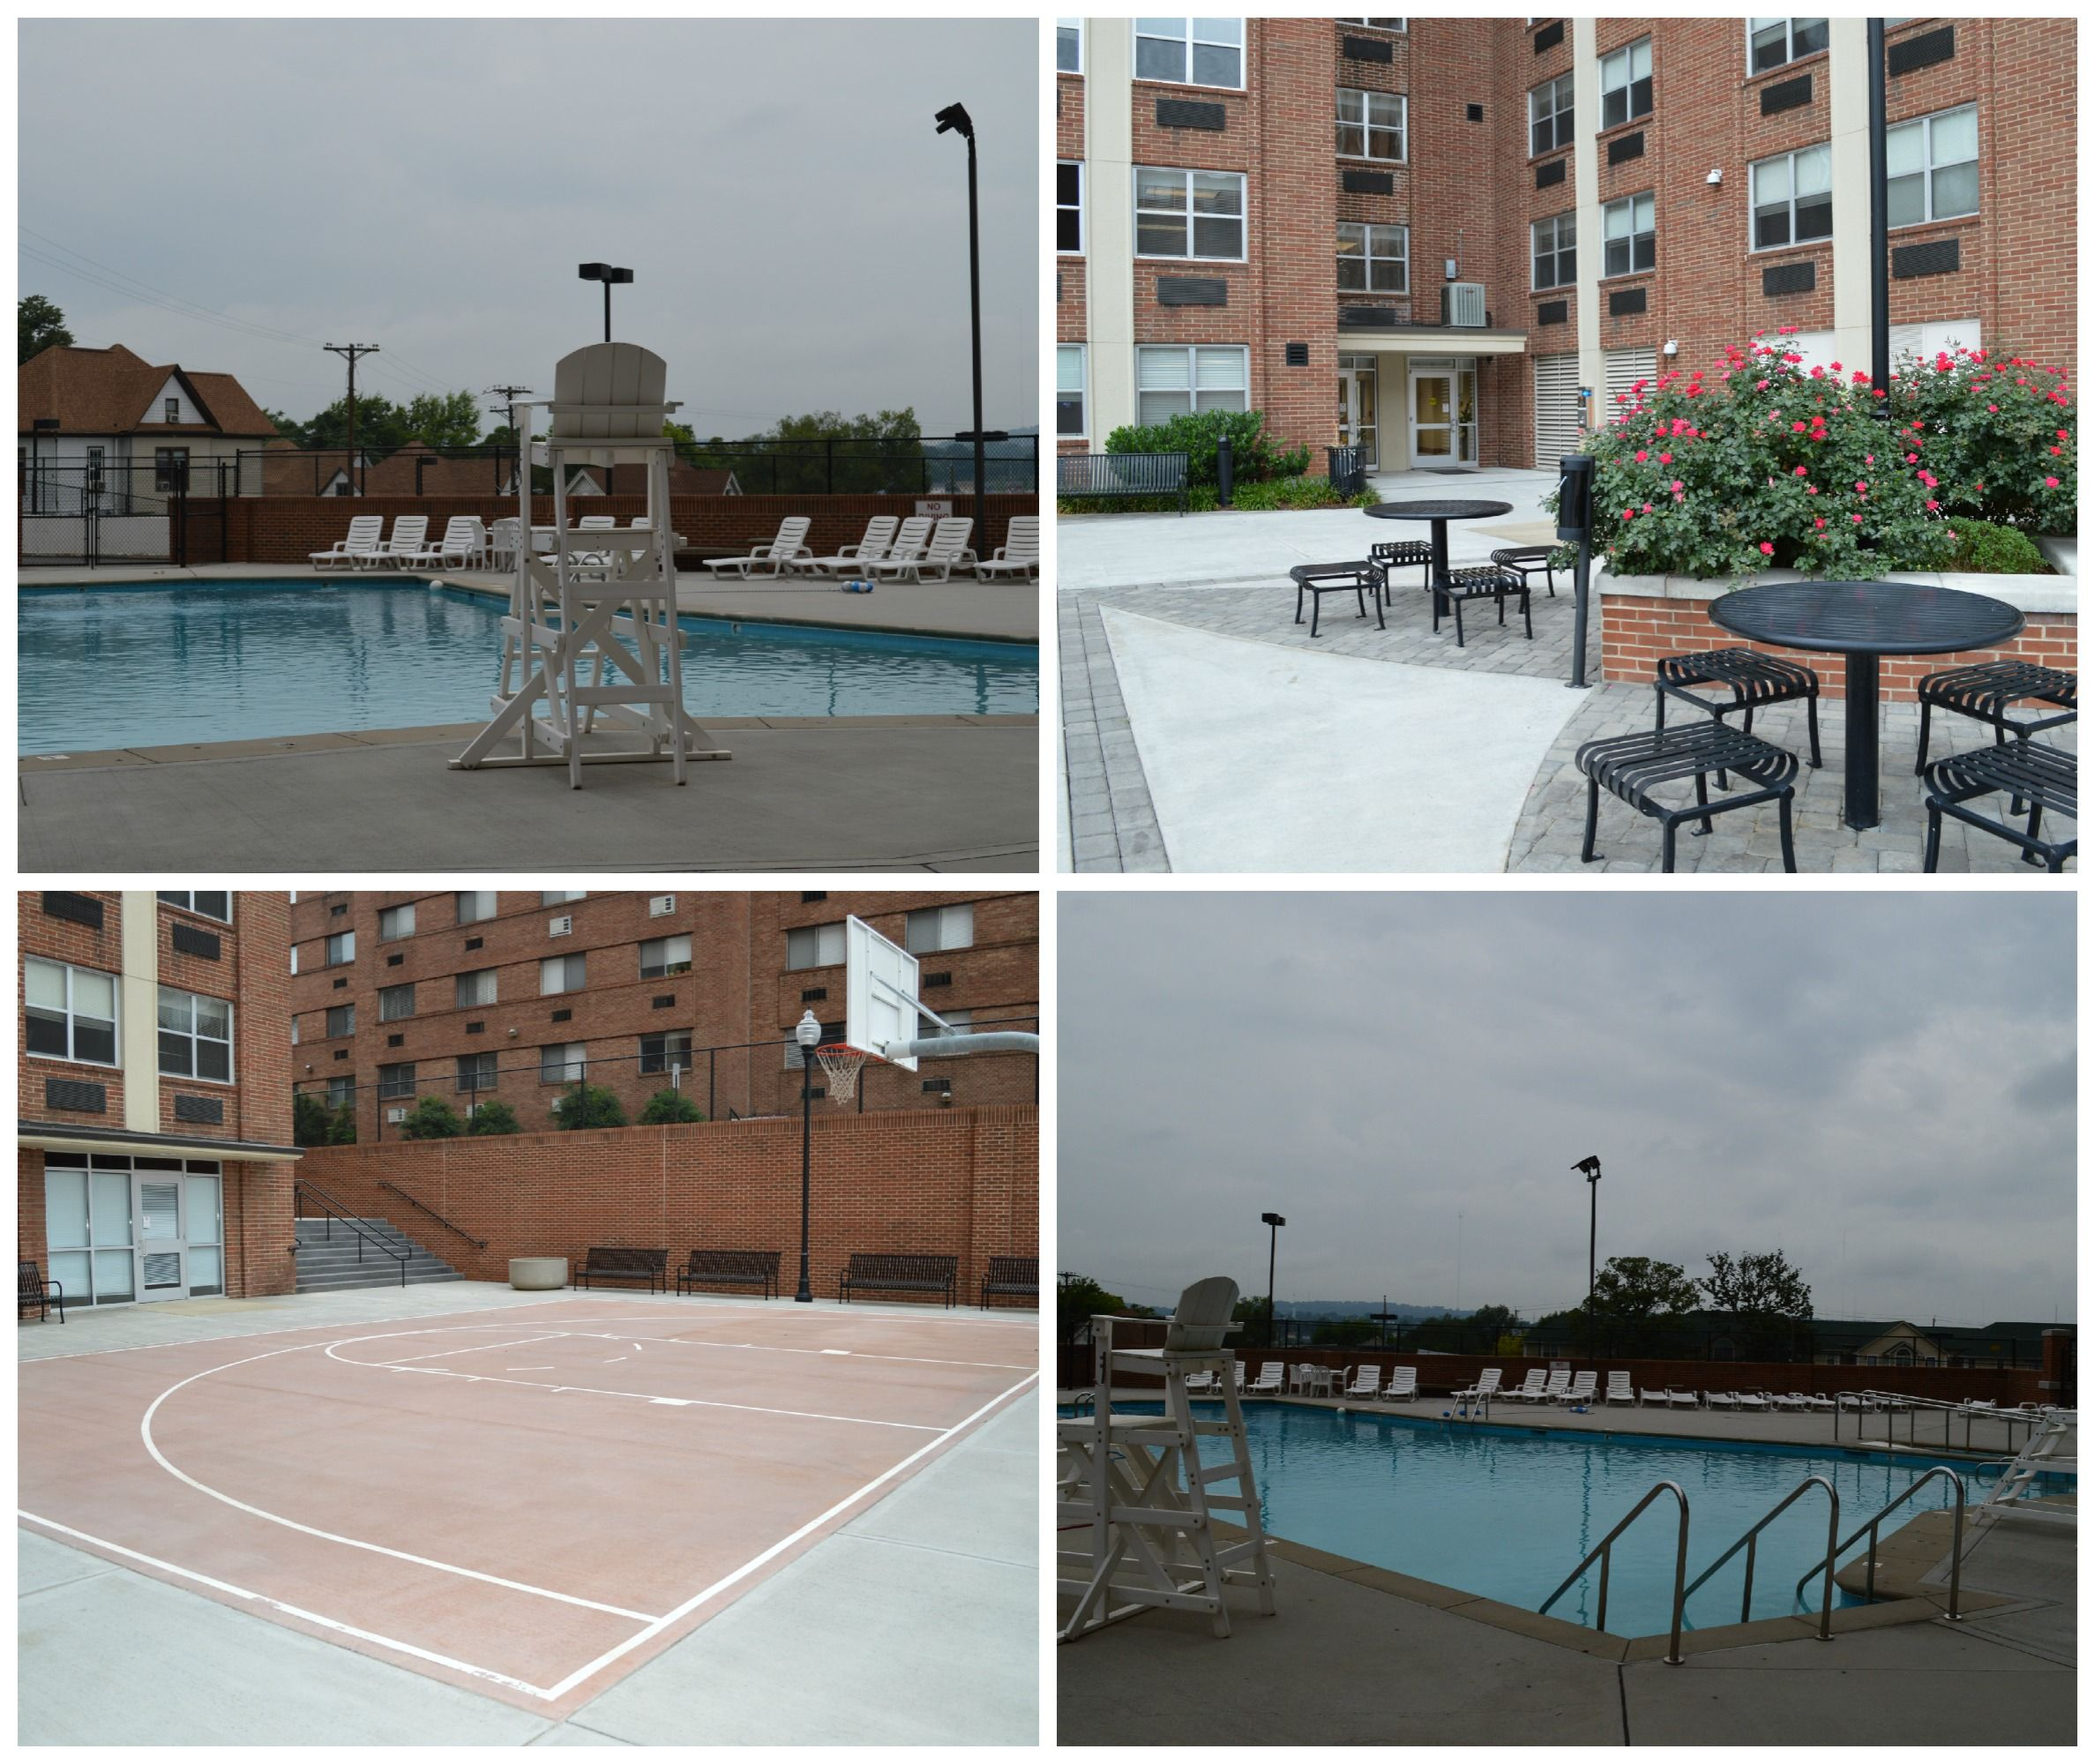 Laurel Hall Outdoor Area And Pool Outdoor Area Apartment Style Residence Hall